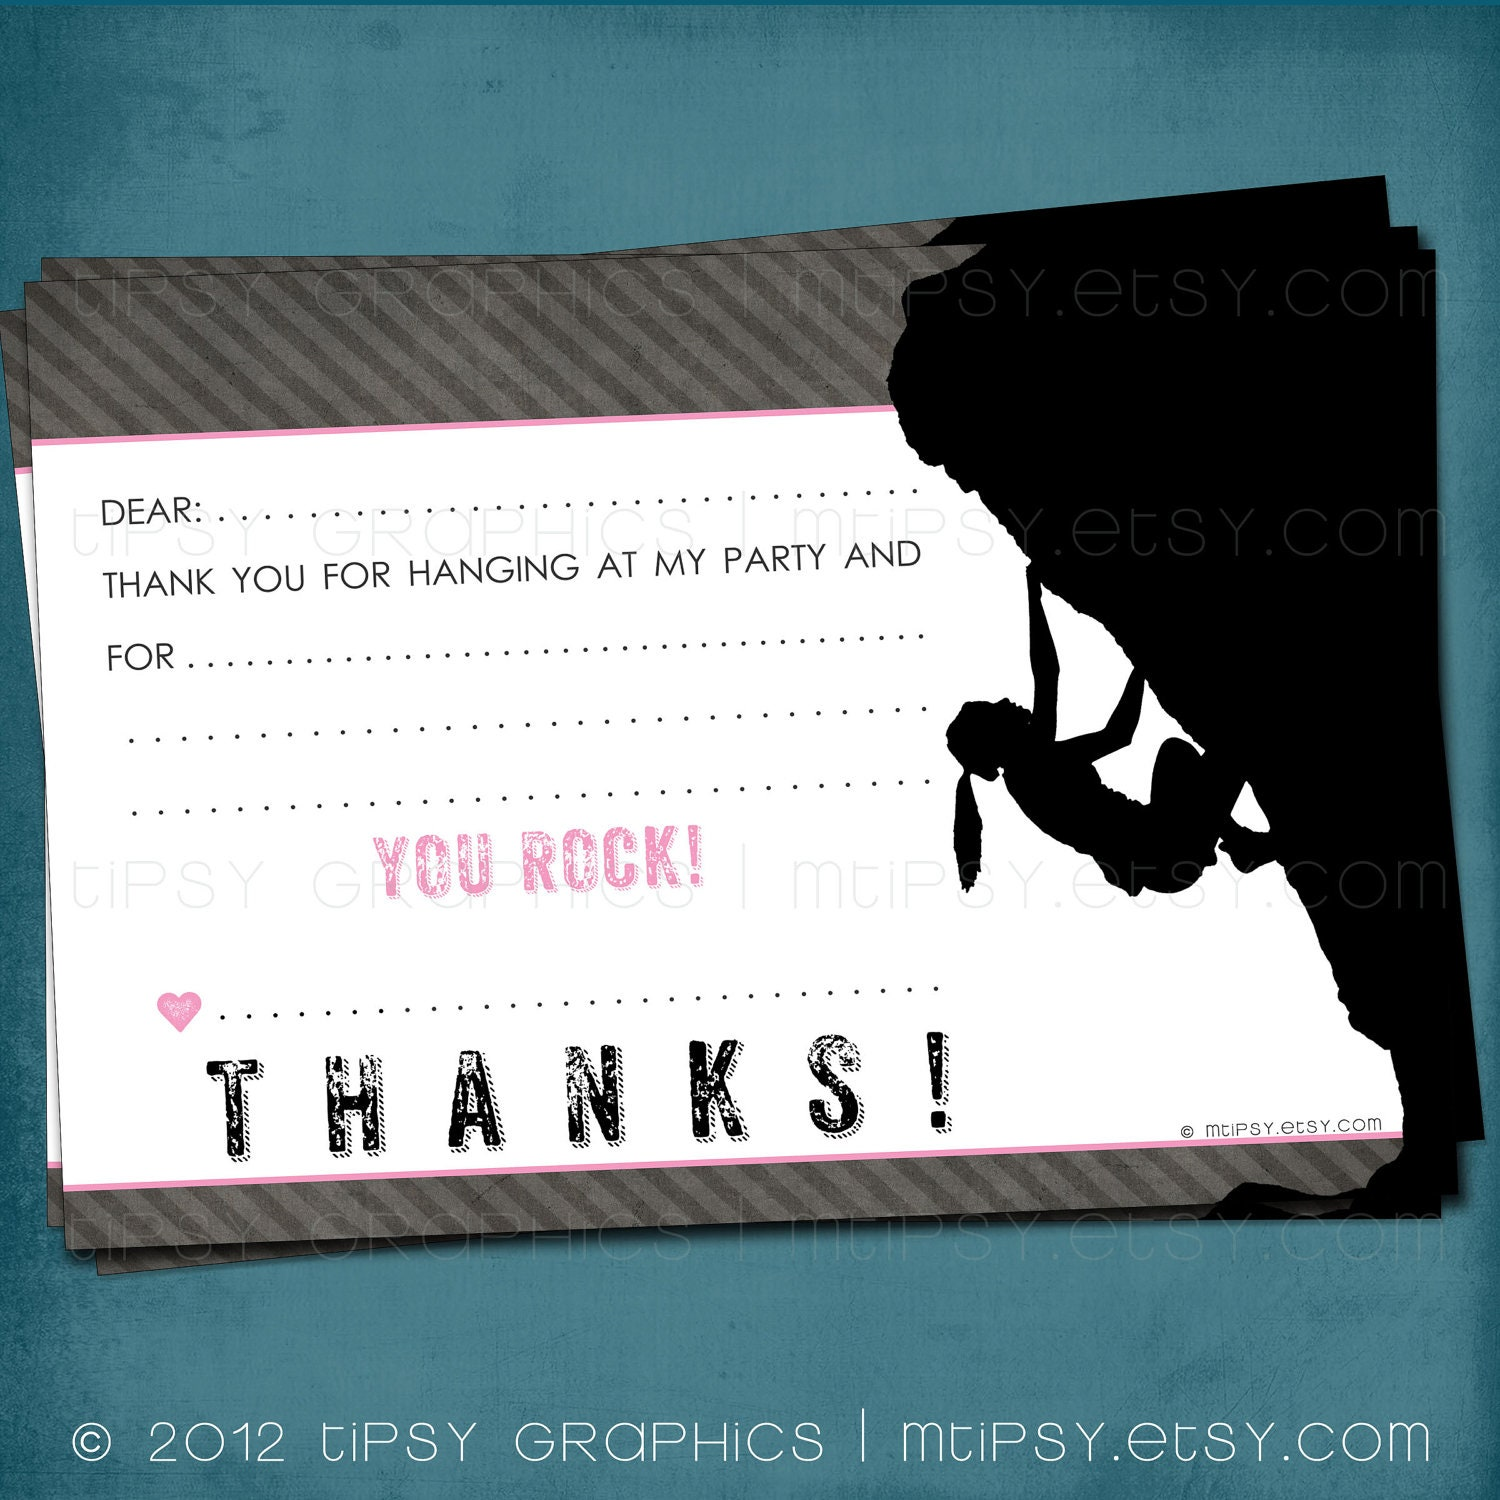 You Rock. Rock Climbing Party Thank You Note for Big Kids by